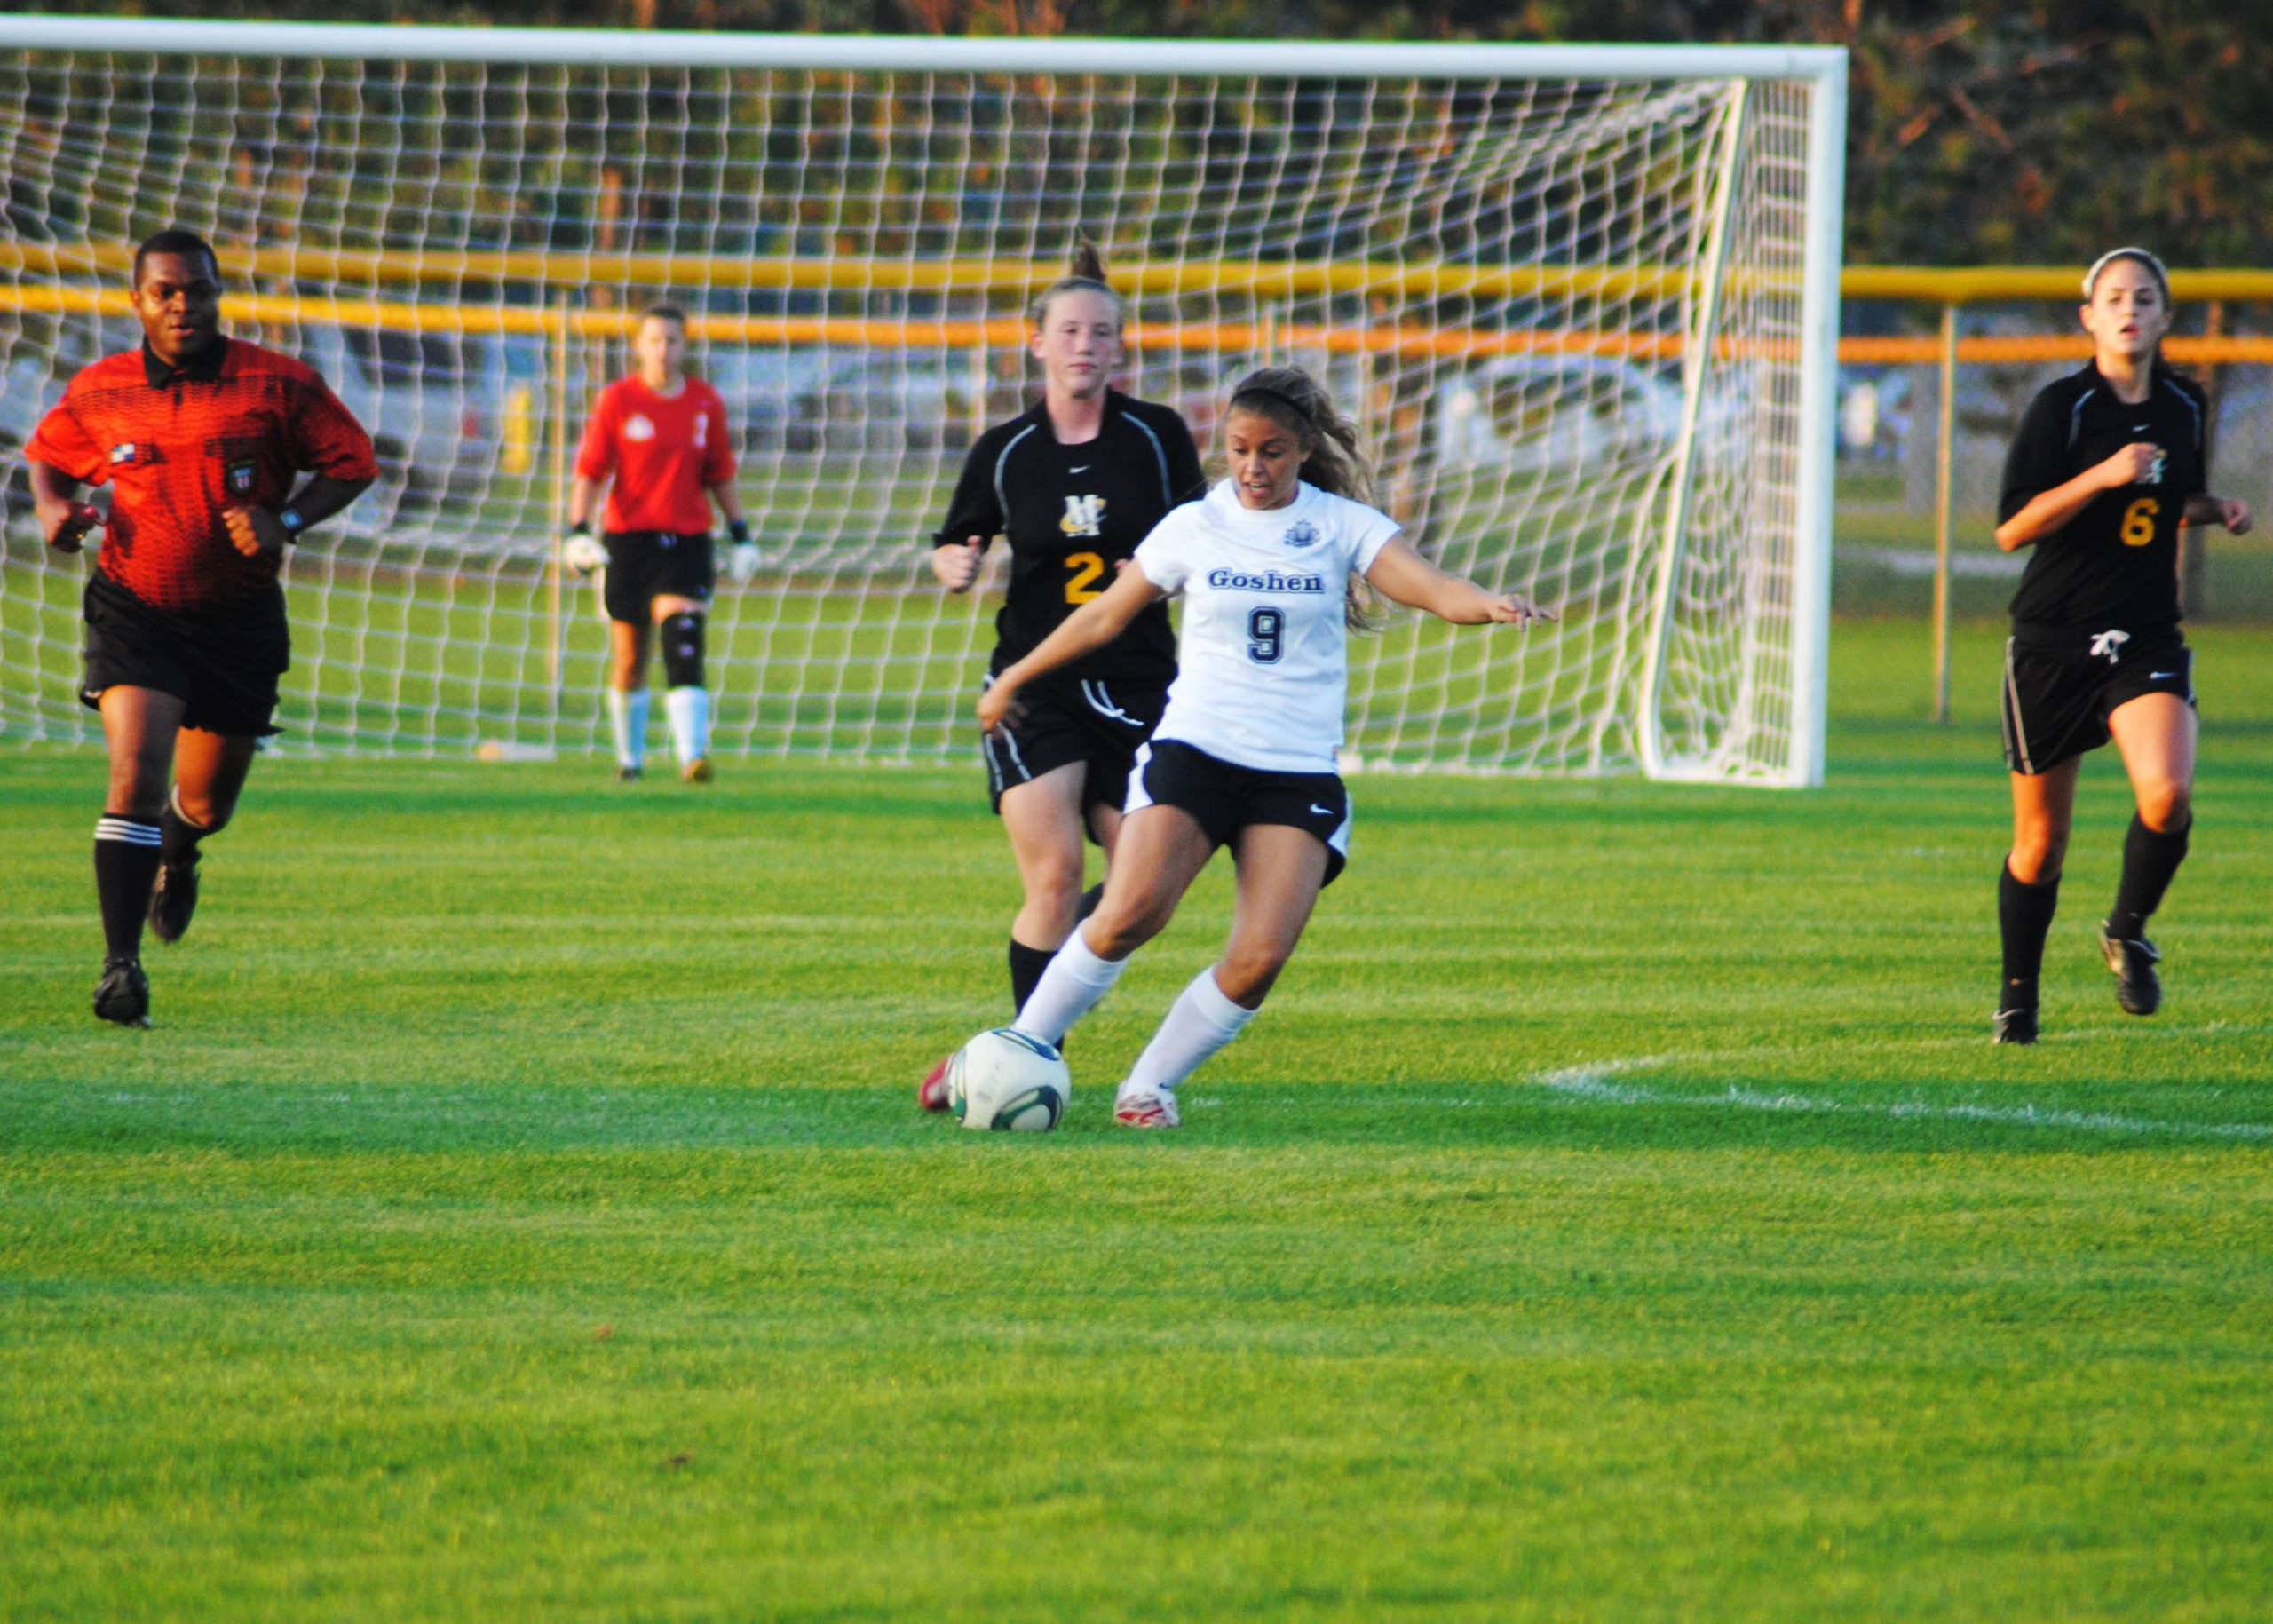 A player on the Goshen women's soccer team dribbles the ball away from opposing players during a game